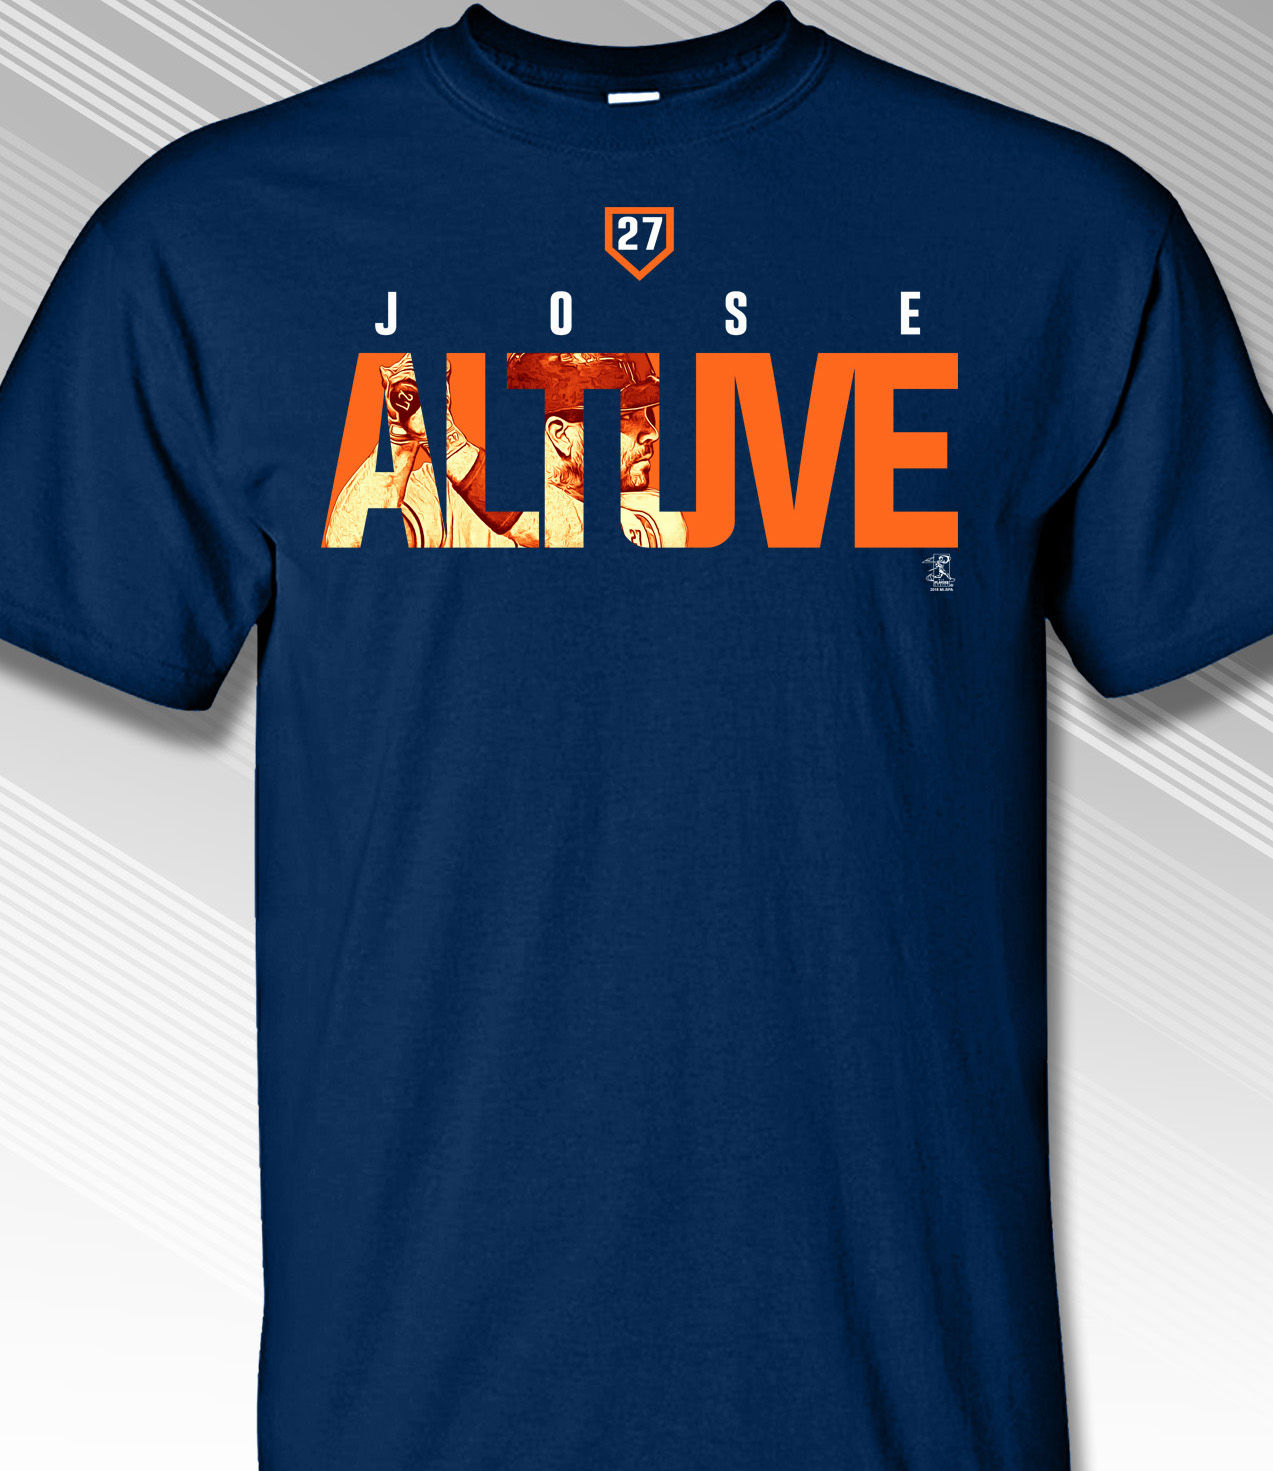 Jose Altuve Houston Name Frame T-Shirt<br>Short or Long Sleeve<br>Youth Med to Adult 4X